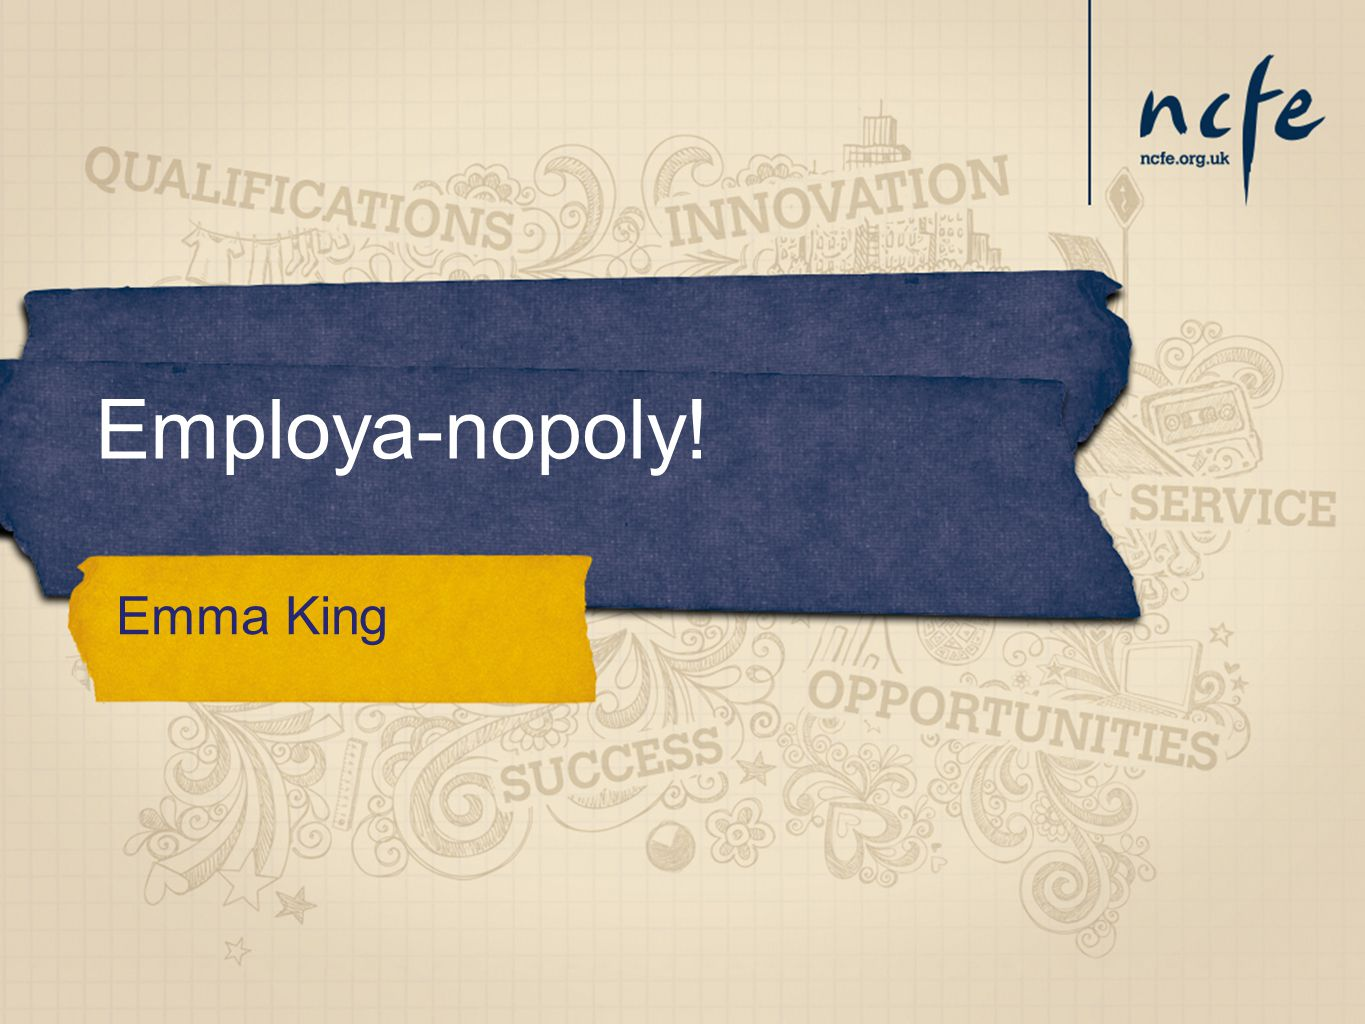 Employa-nopoly! Emma King